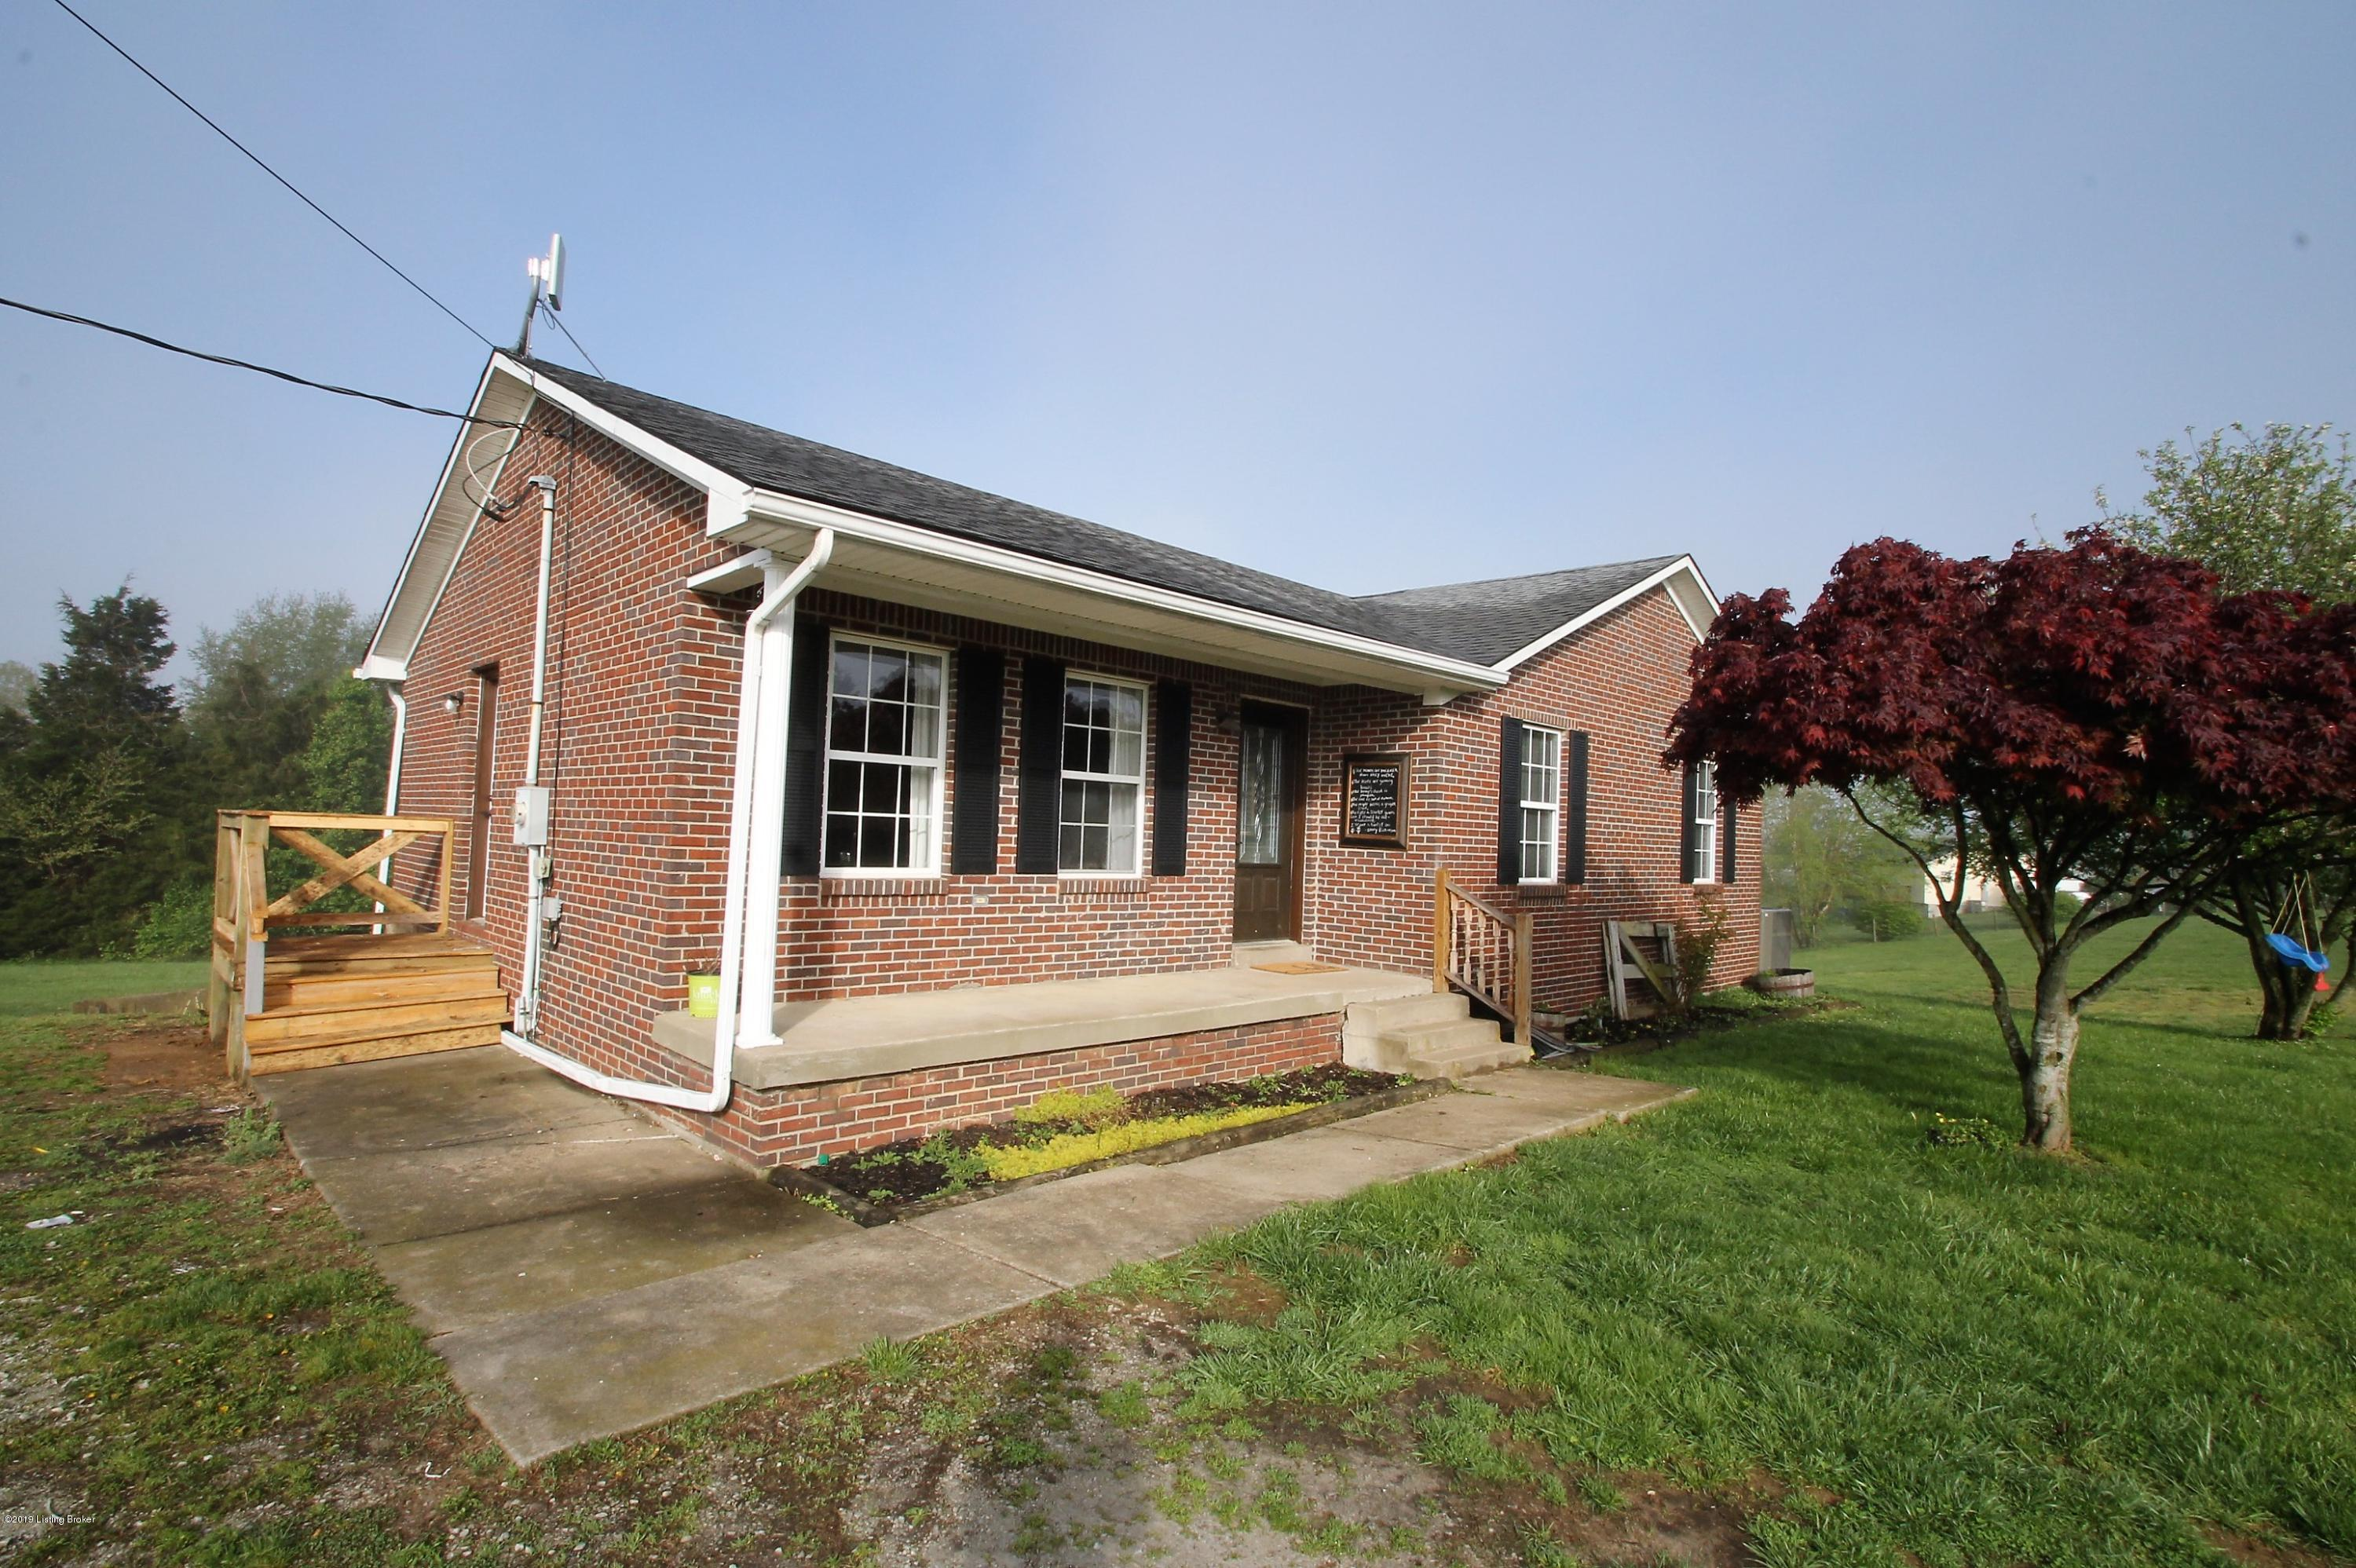 551 Tindale Dr, Taylorsville, Kentucky 40071, 4 Bedrooms Bedrooms, 7 Rooms Rooms,2 BathroomsBathrooms,Residential,For Sale,Tindale,1533627